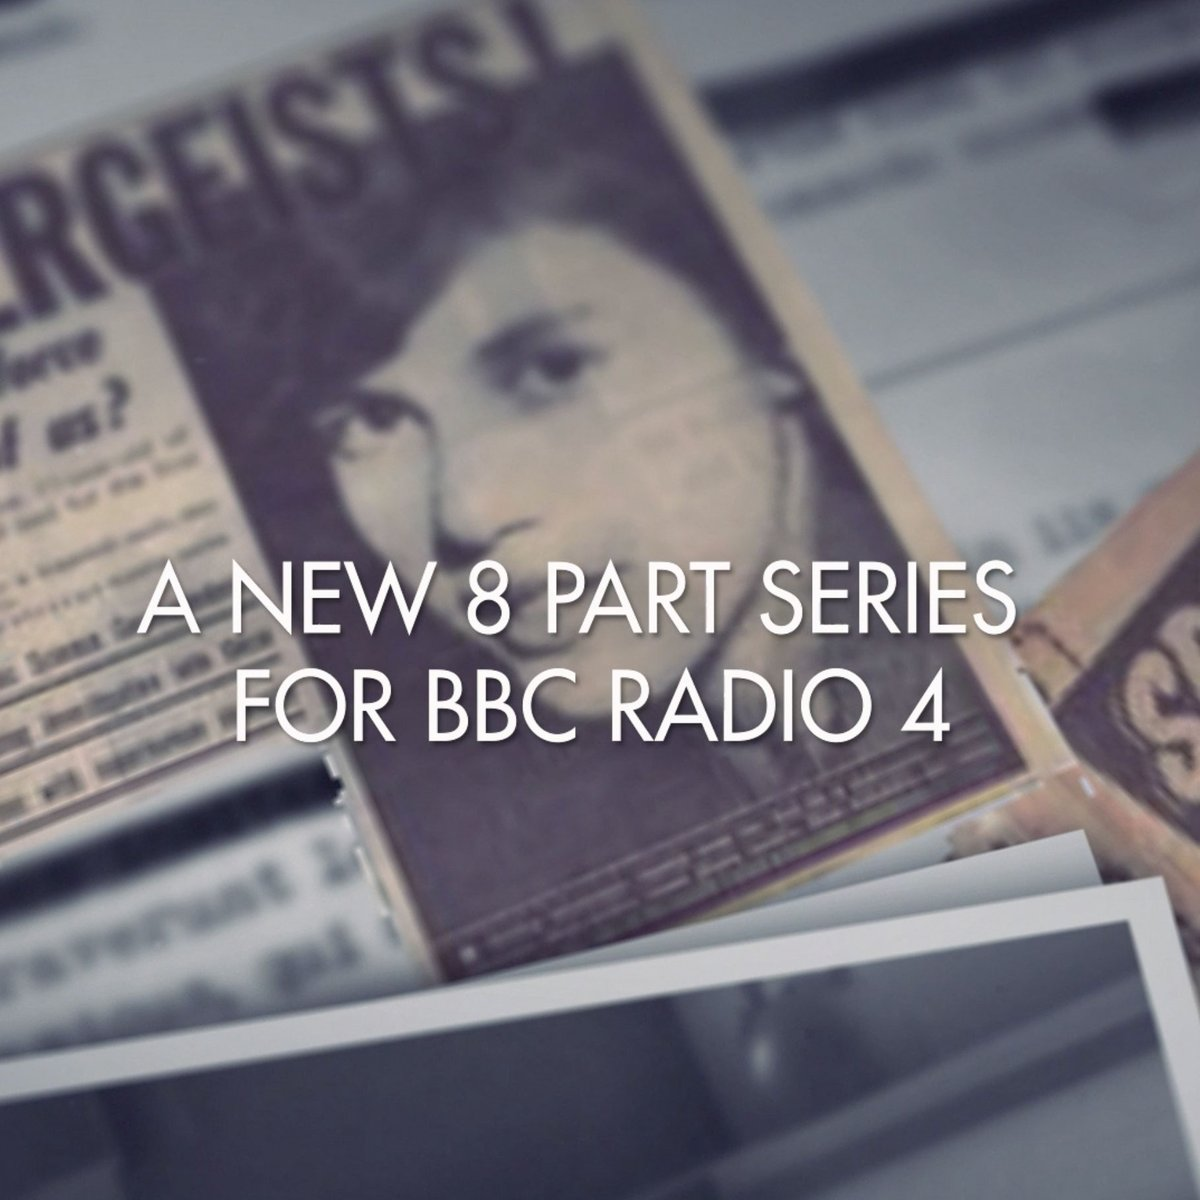 The Battersea Poltergeist - a chilling new drama-documentary podcast presented by @Danny_Robins and with an extraordinary cast: @DafneKeen, Toby Jones, @alicelowe, @burngorman, Calvin Demba and Sorcha Cusack. Music from @nadineshah  Subscribe on @BBCSounds